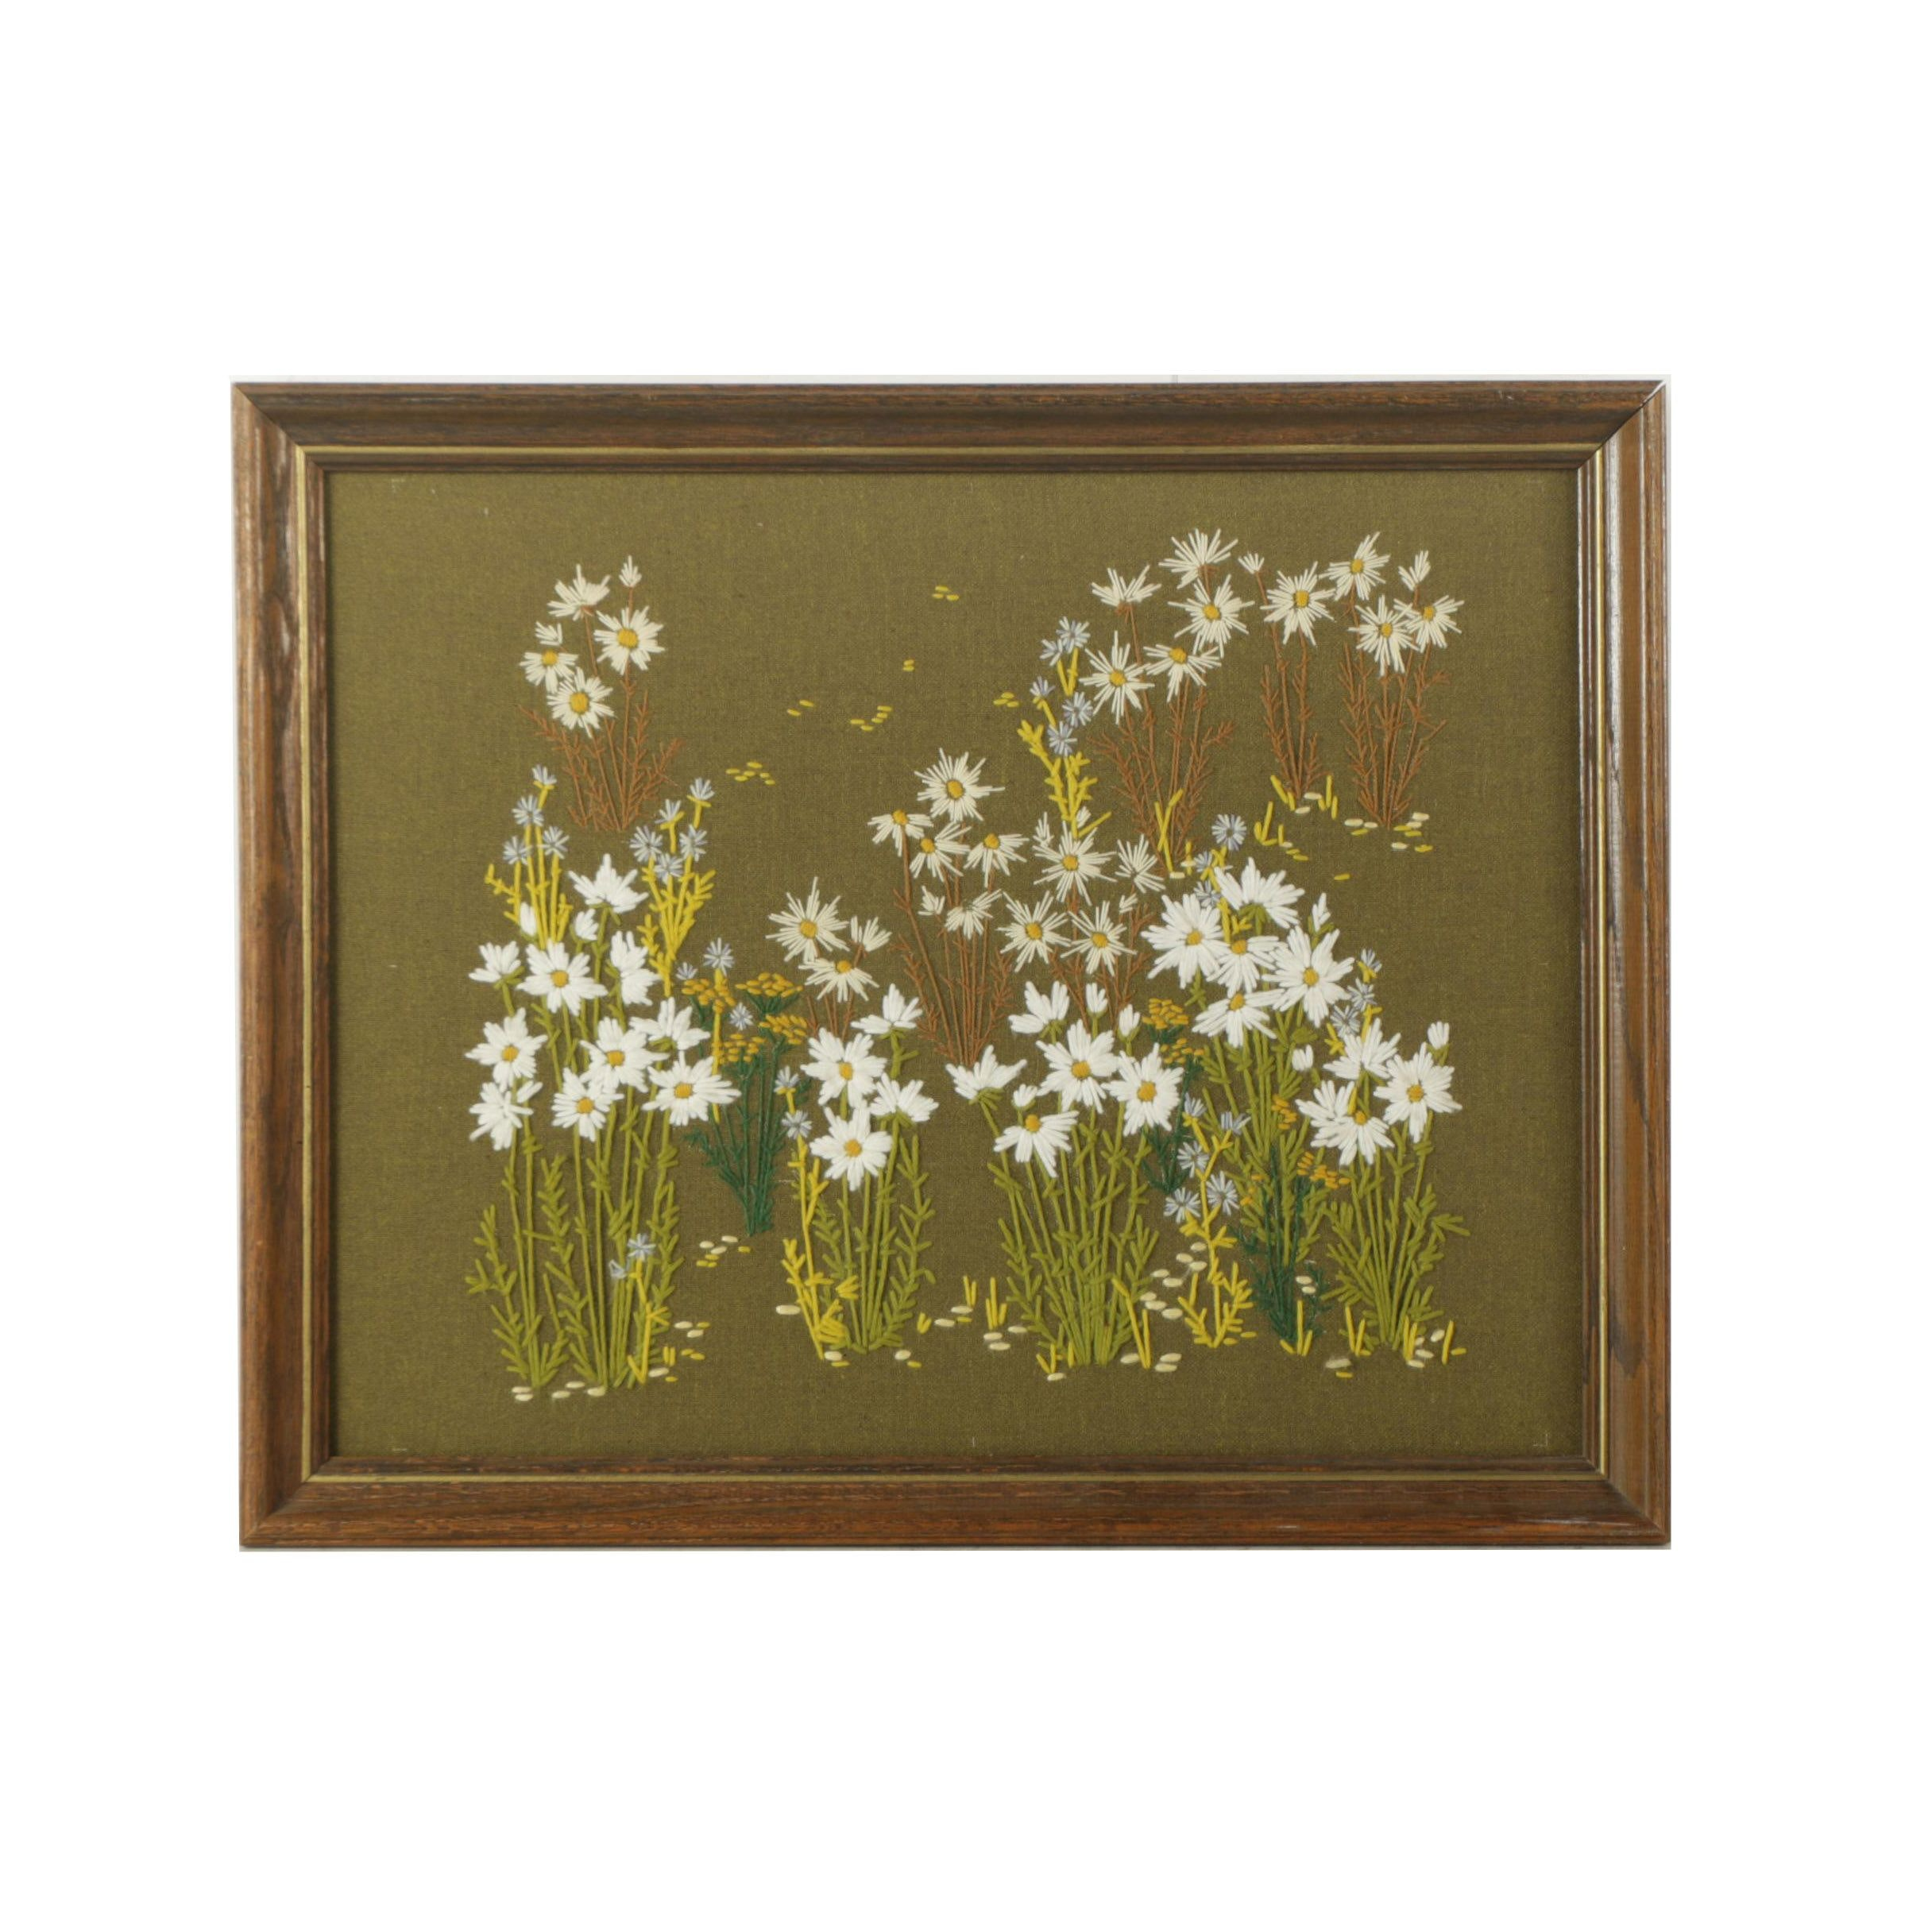 Freehand Embroidery of Wildflowers